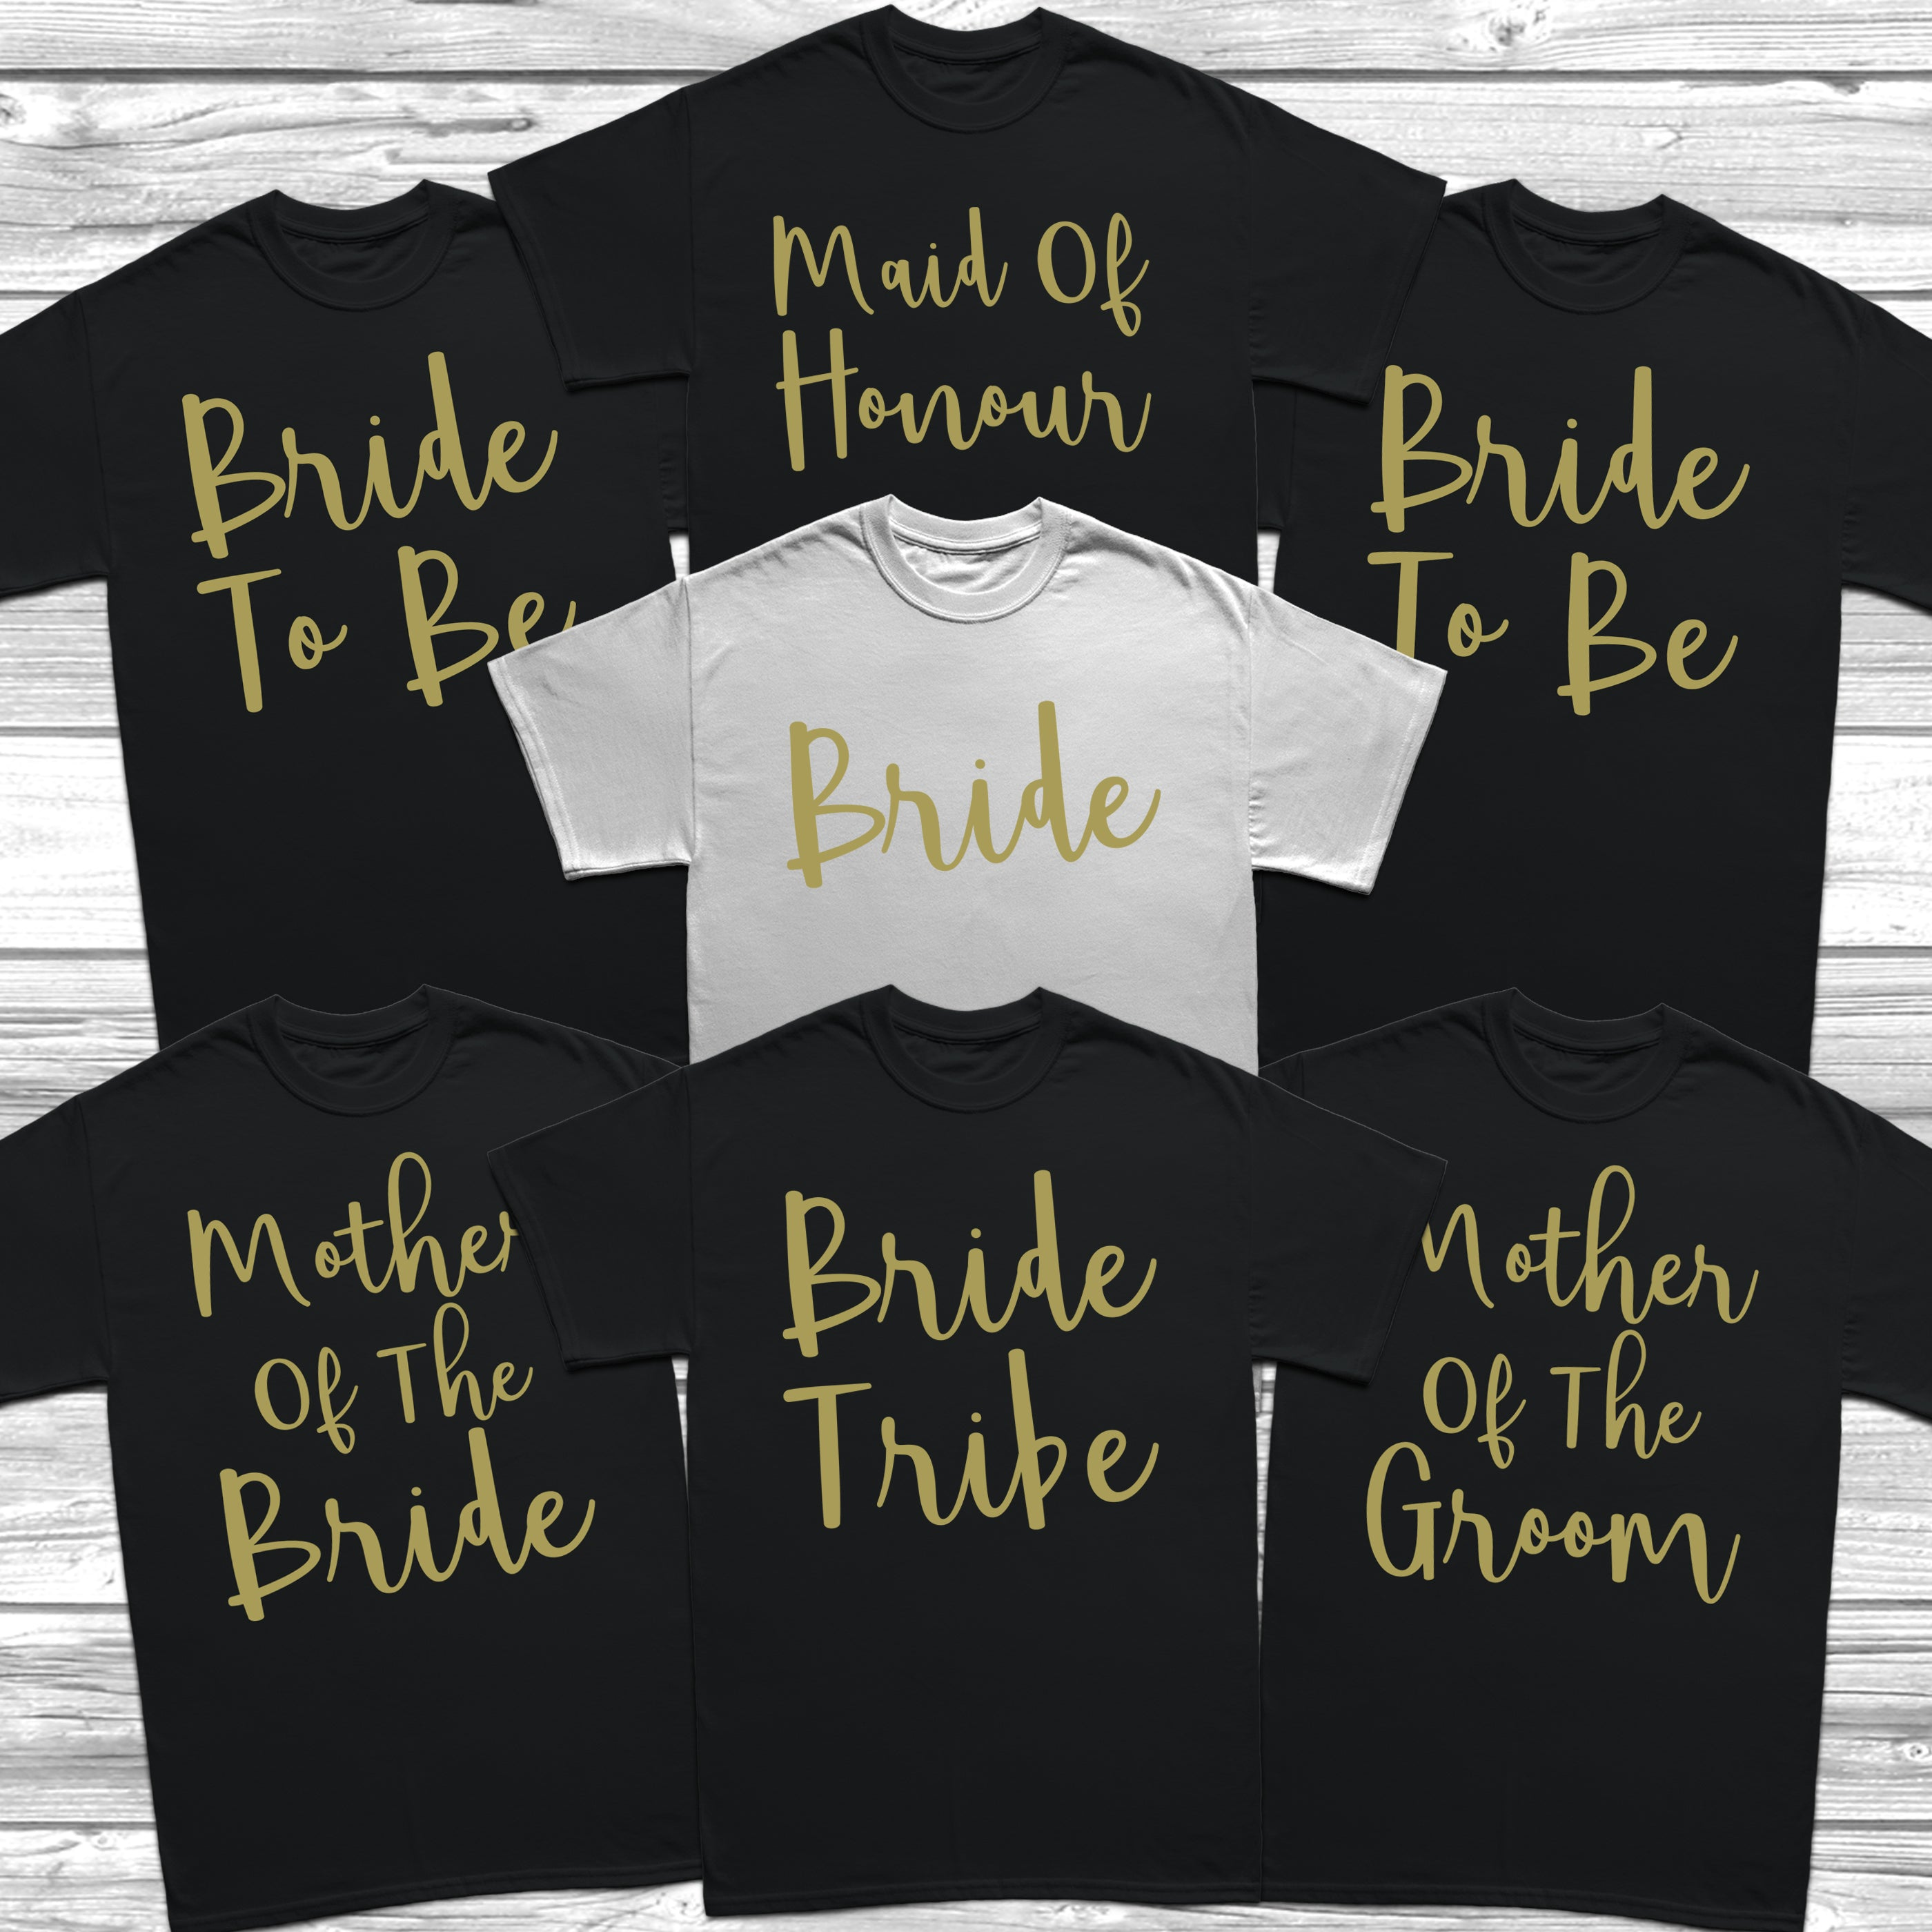 127091b1b Personalized Bride And Groom T Shirts - DREAMWORKS